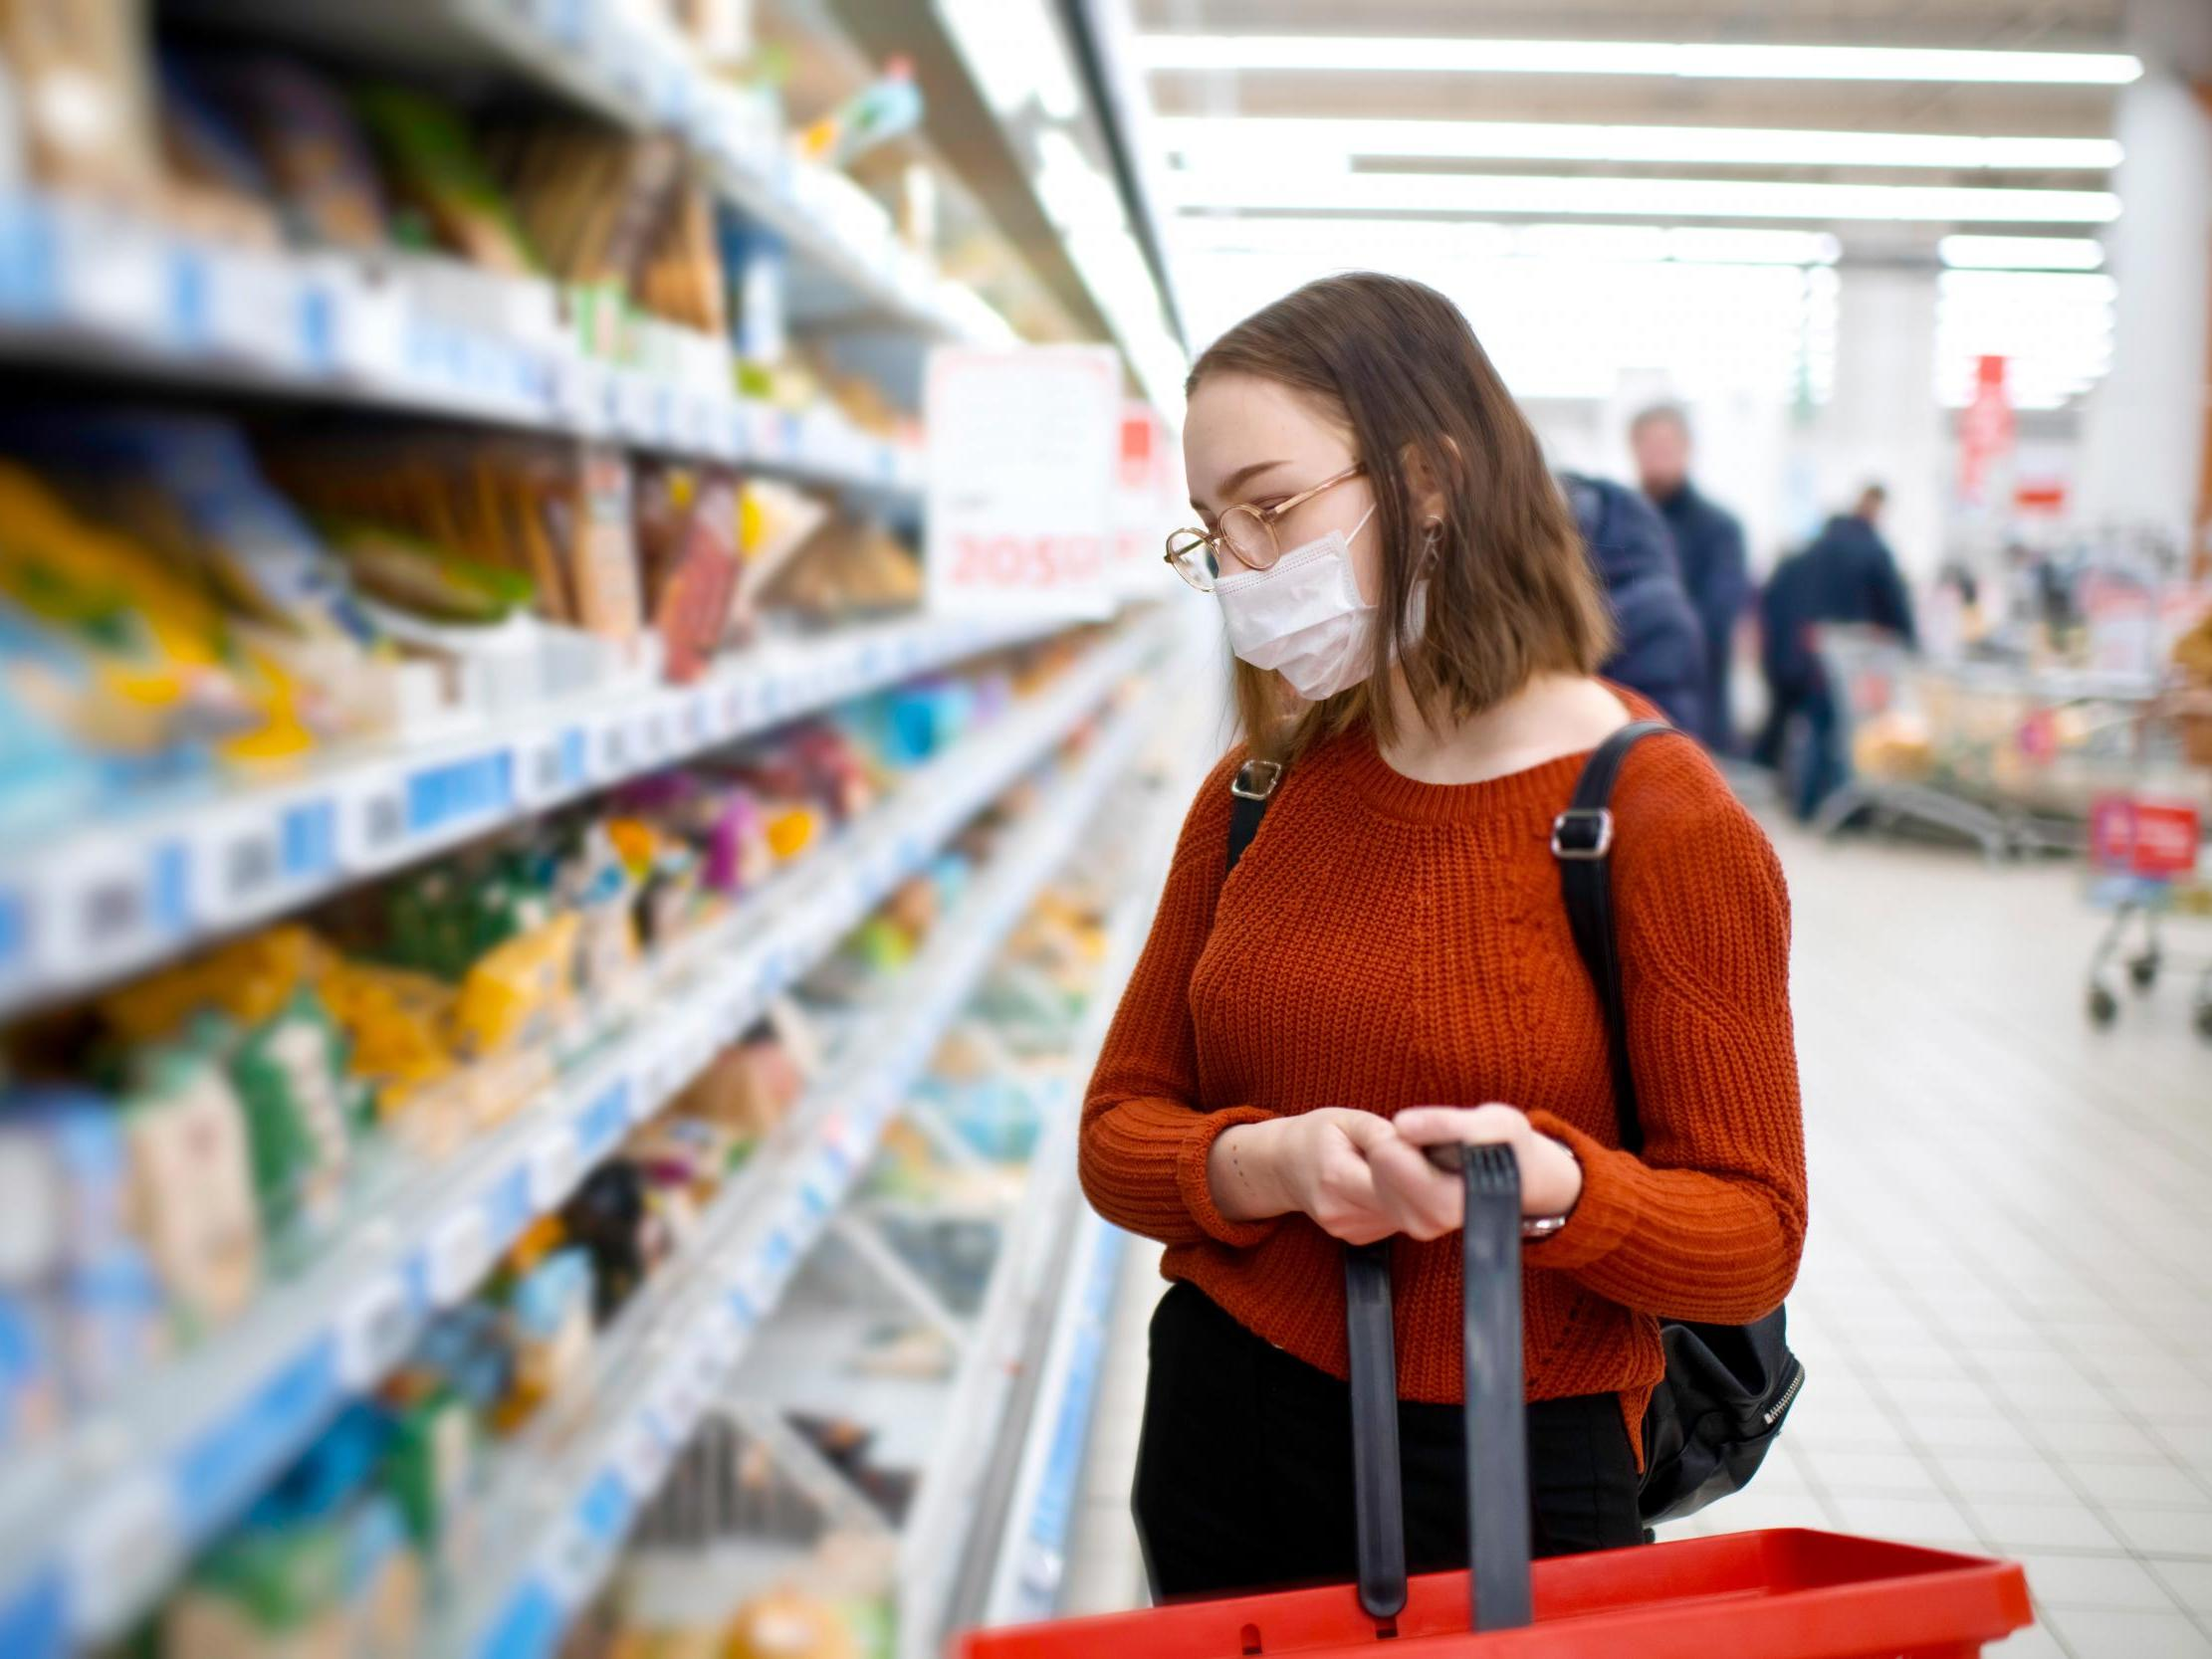 Sunday trading laws could be relaxed to help economy recover from coronavirus crisis